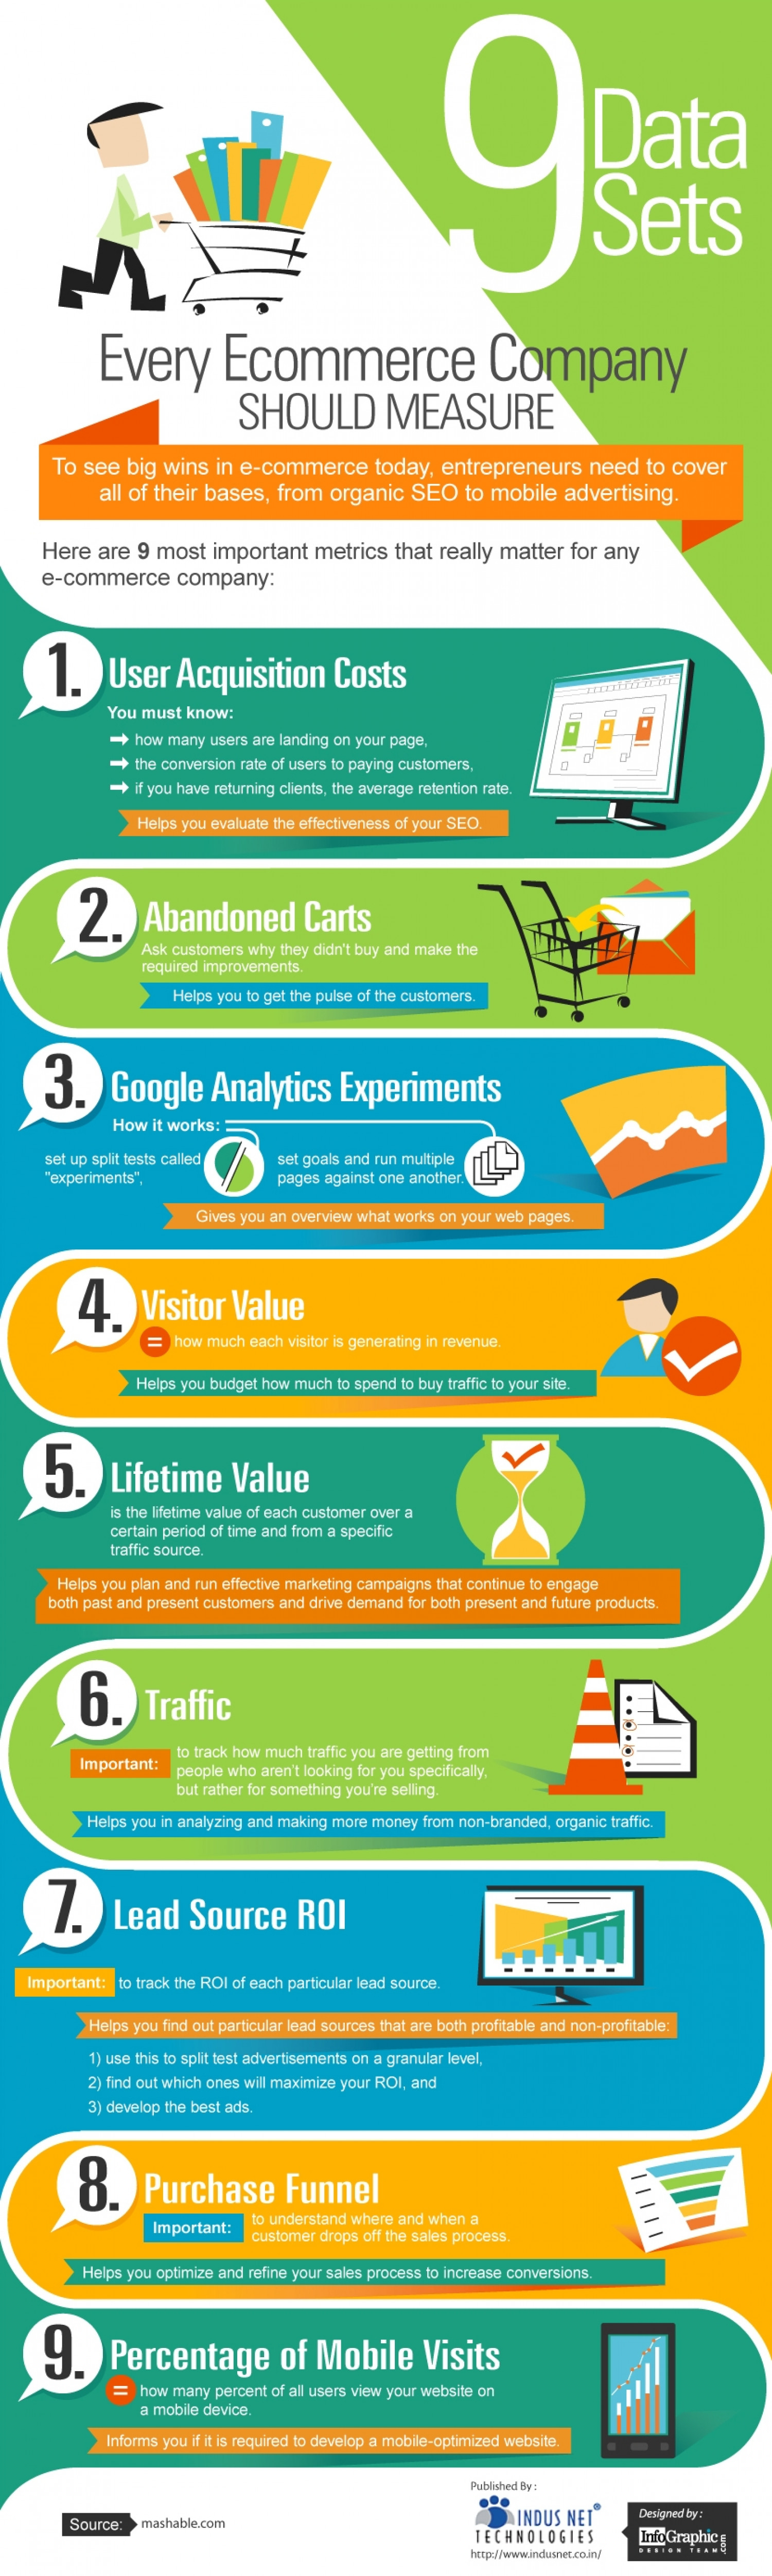 9 Data Sets Every Ecommerce Company Should Measure Infographic